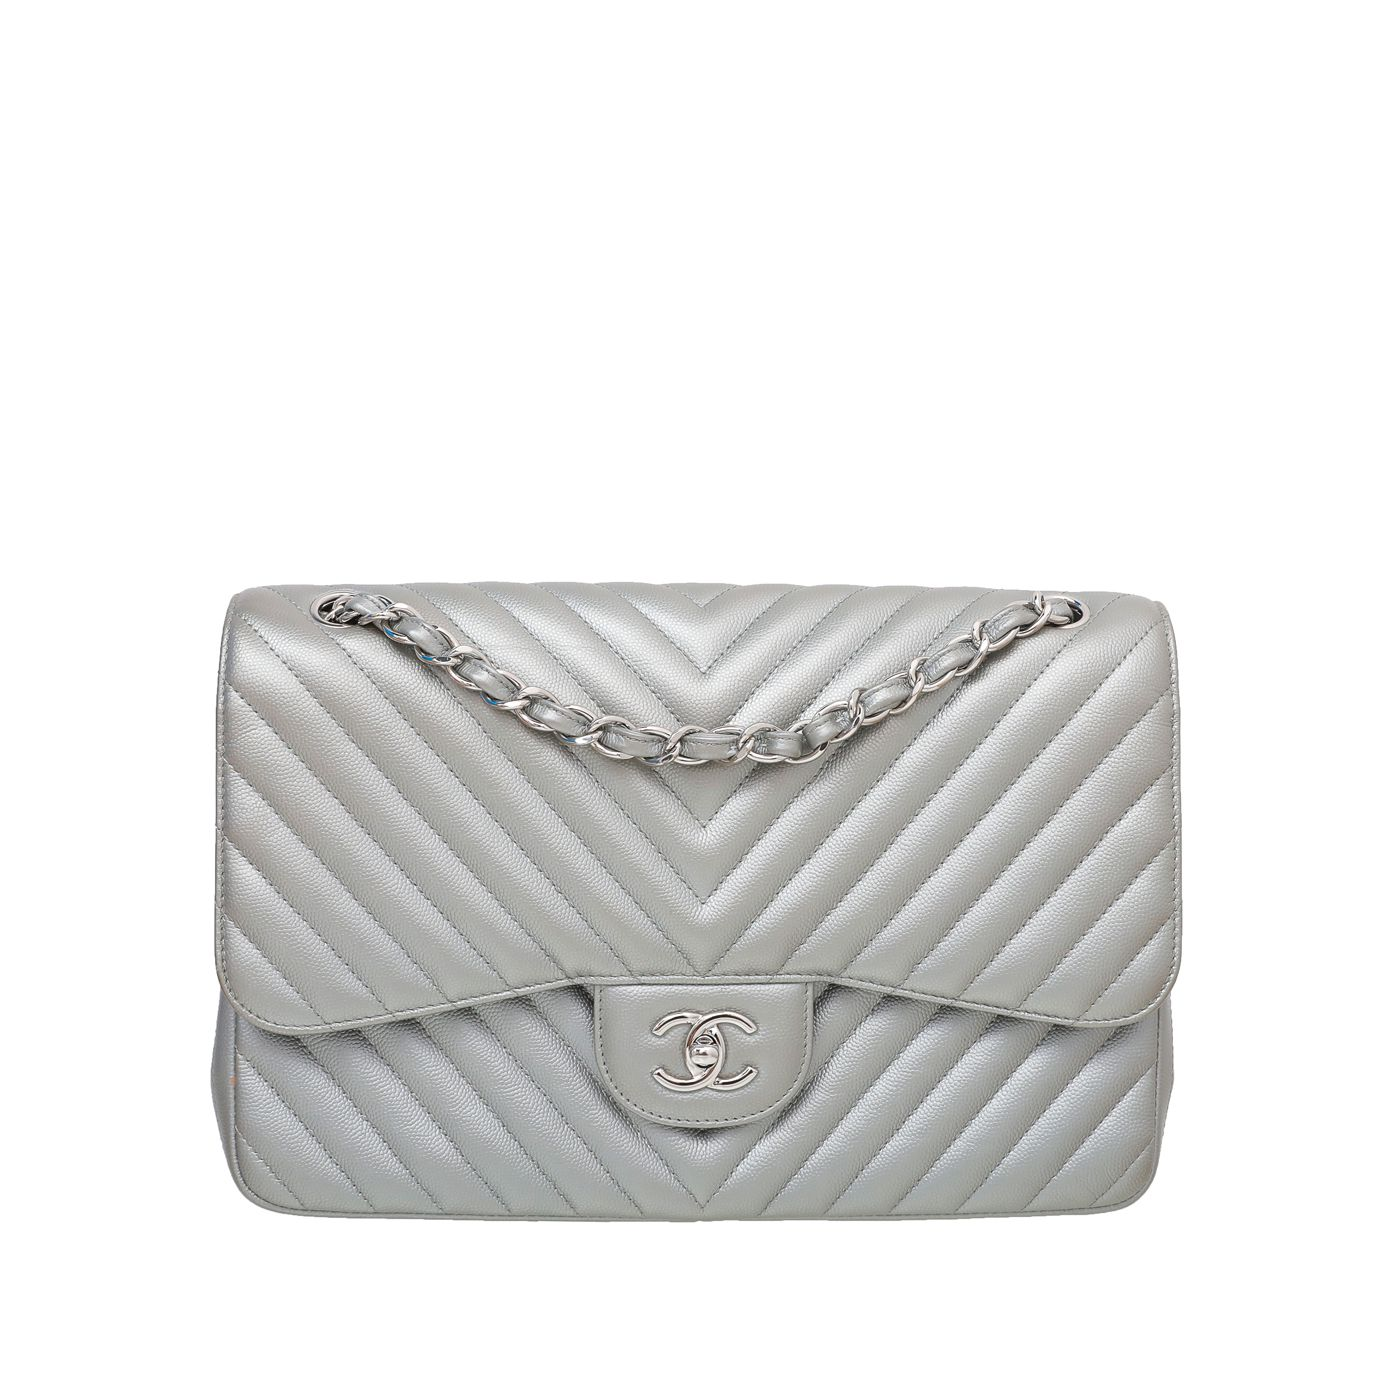 Chanel Metallic Grey CC Chevron Double Flap Jumbo Bag